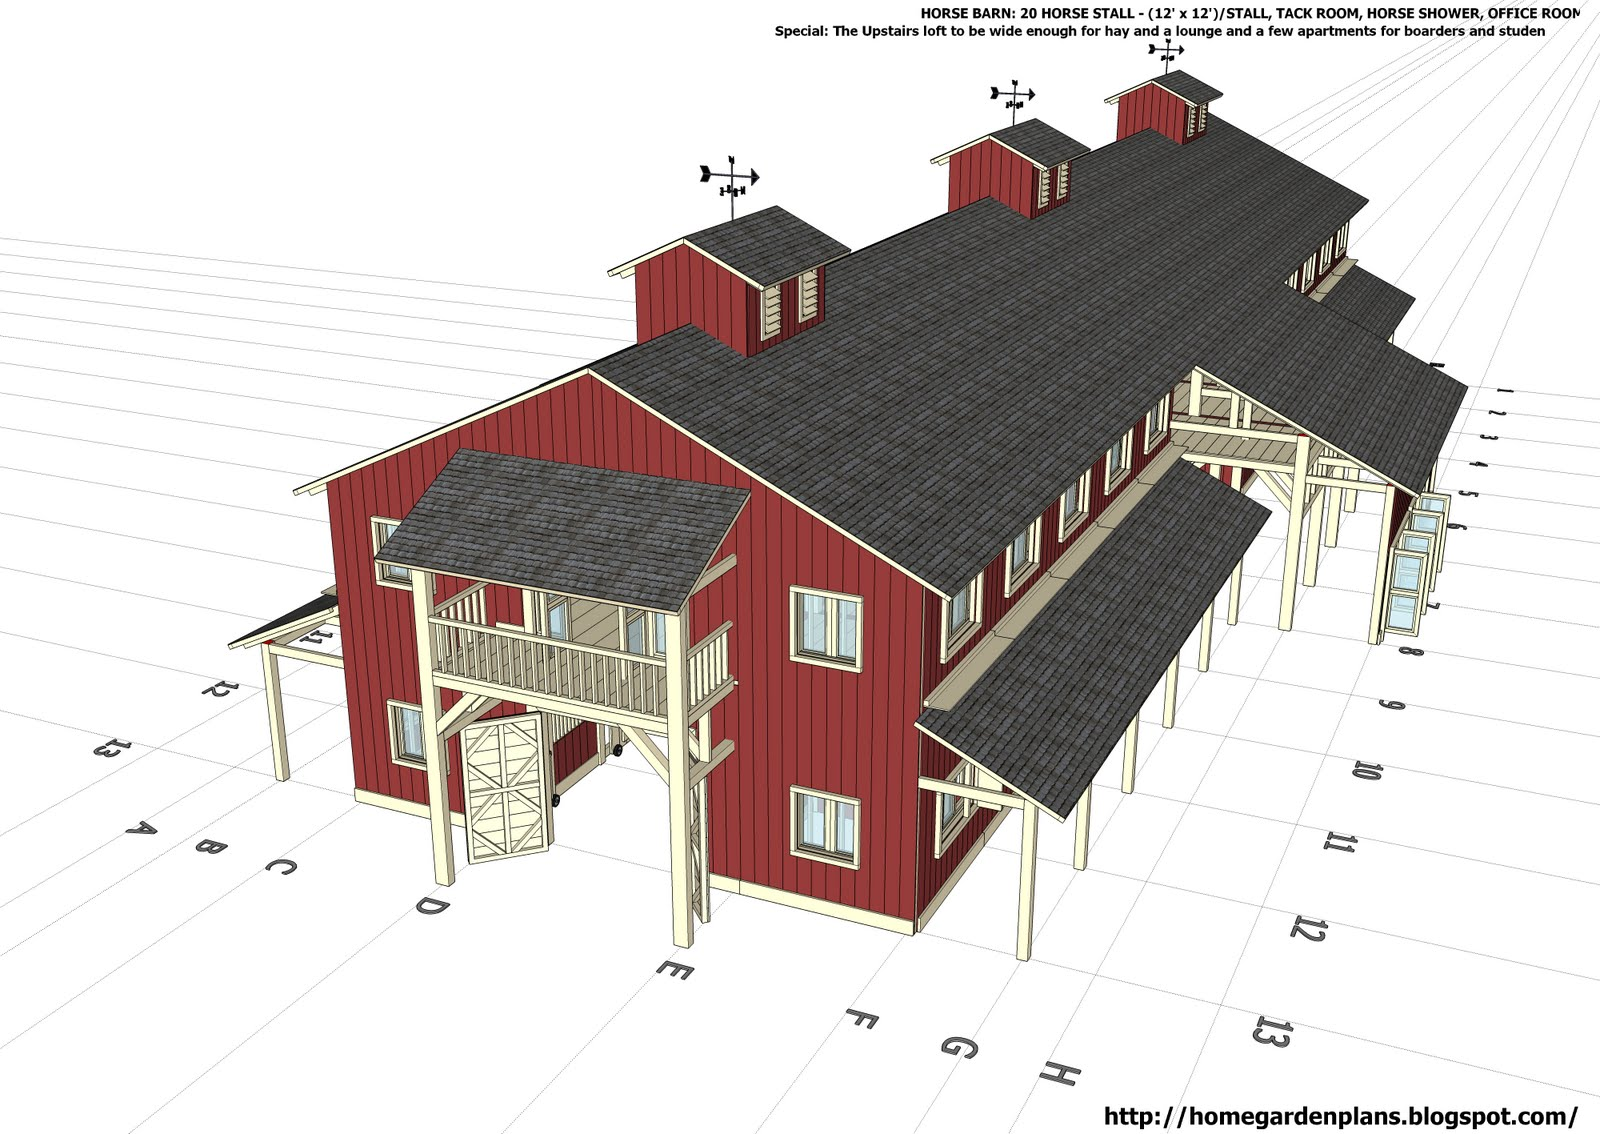 stall horse barn plans large horse barn plans how to build a